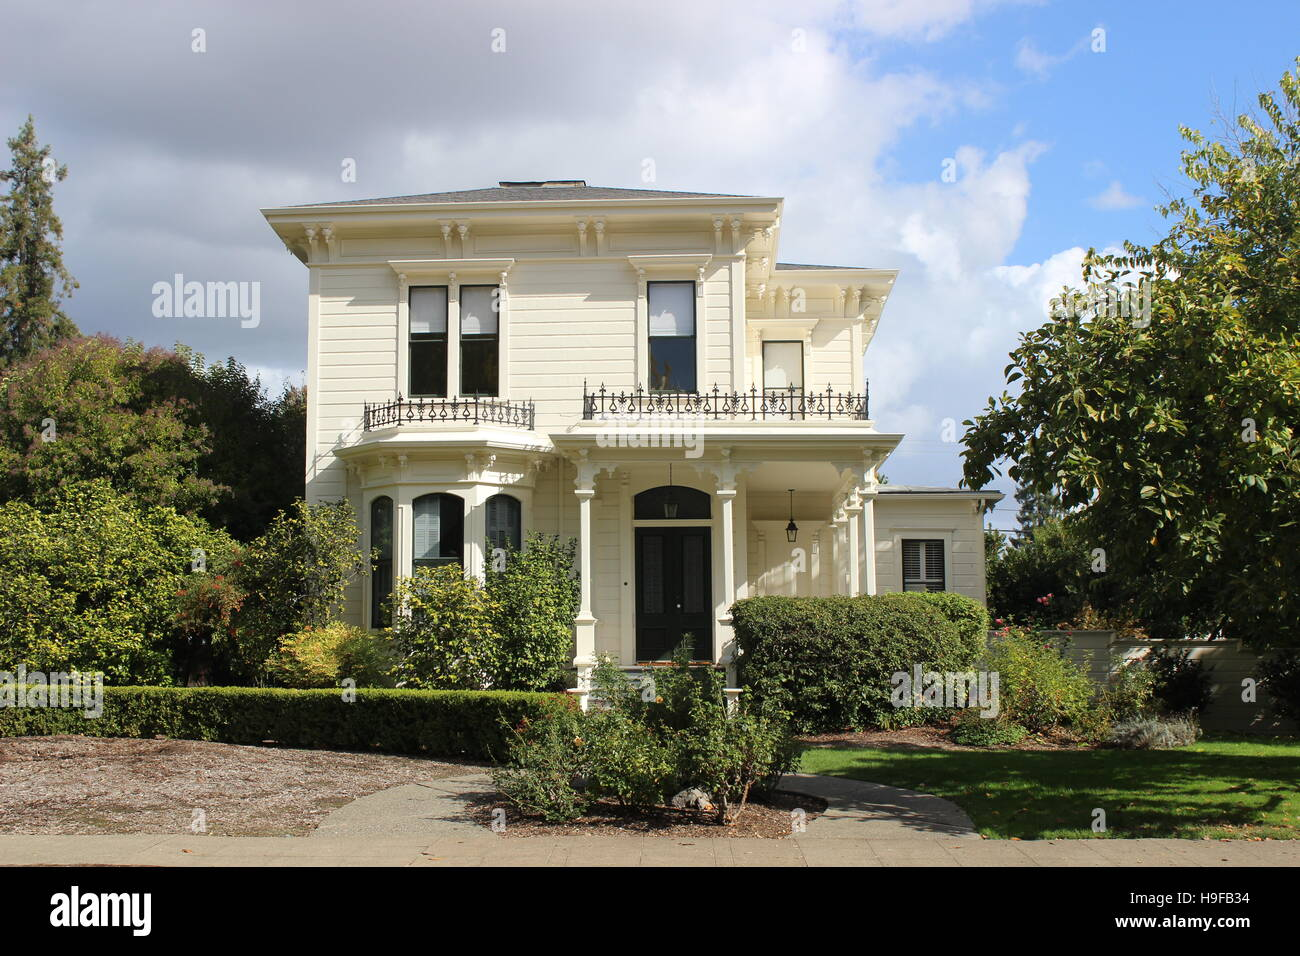 Shadow of a Doubt House, Italianate, Santa Rosa, California - Stock Image